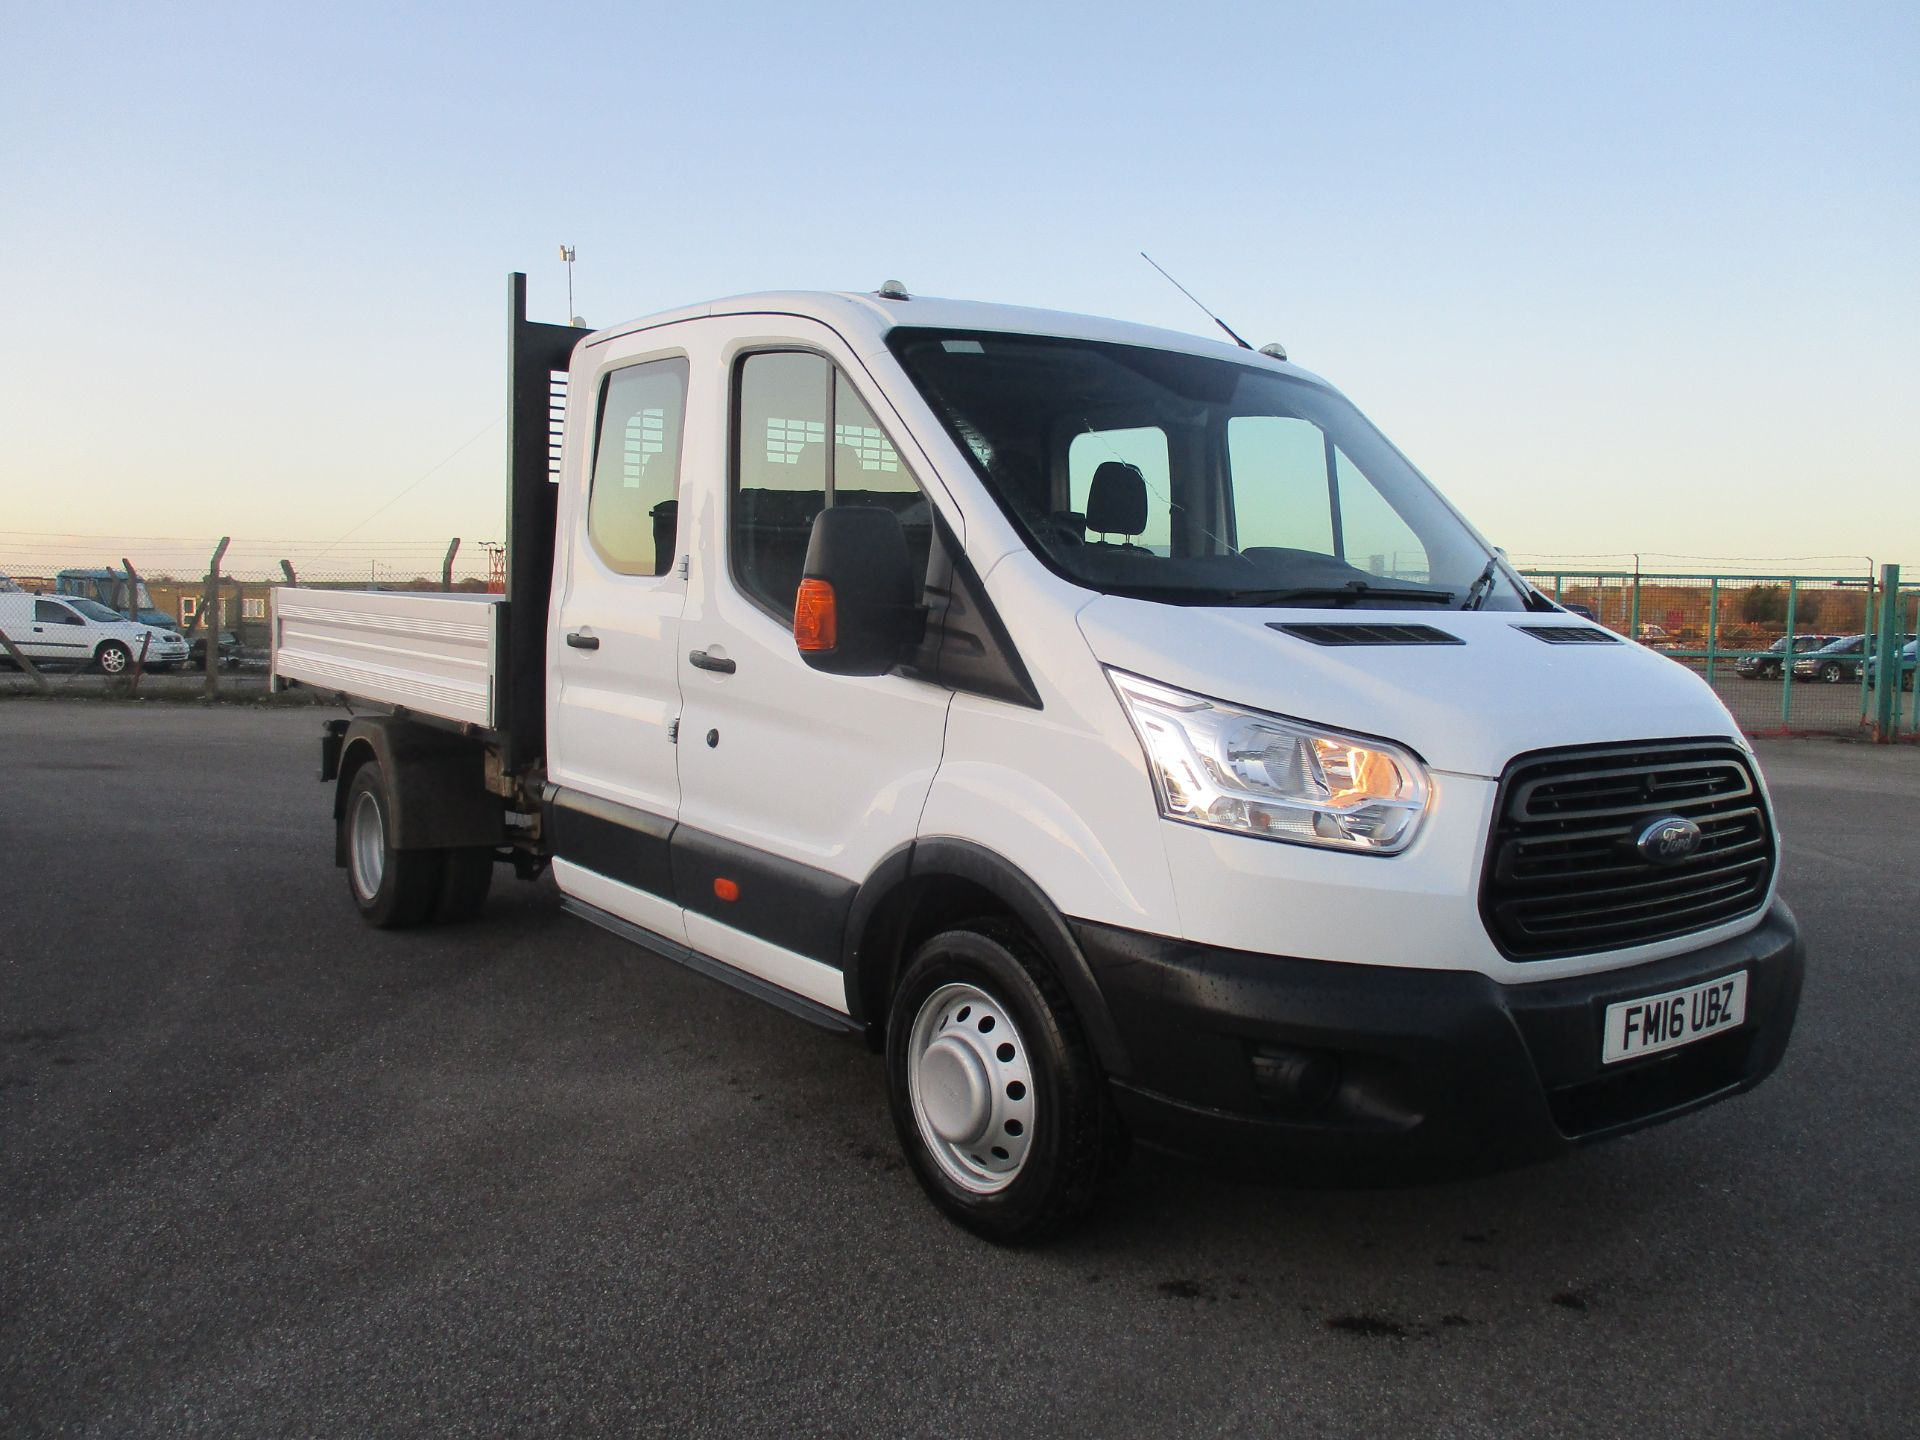 2016 Ford Transit 350 L3 DOUBLE CAB TIPPER 125PS EURO 5 (FM16UBZ)